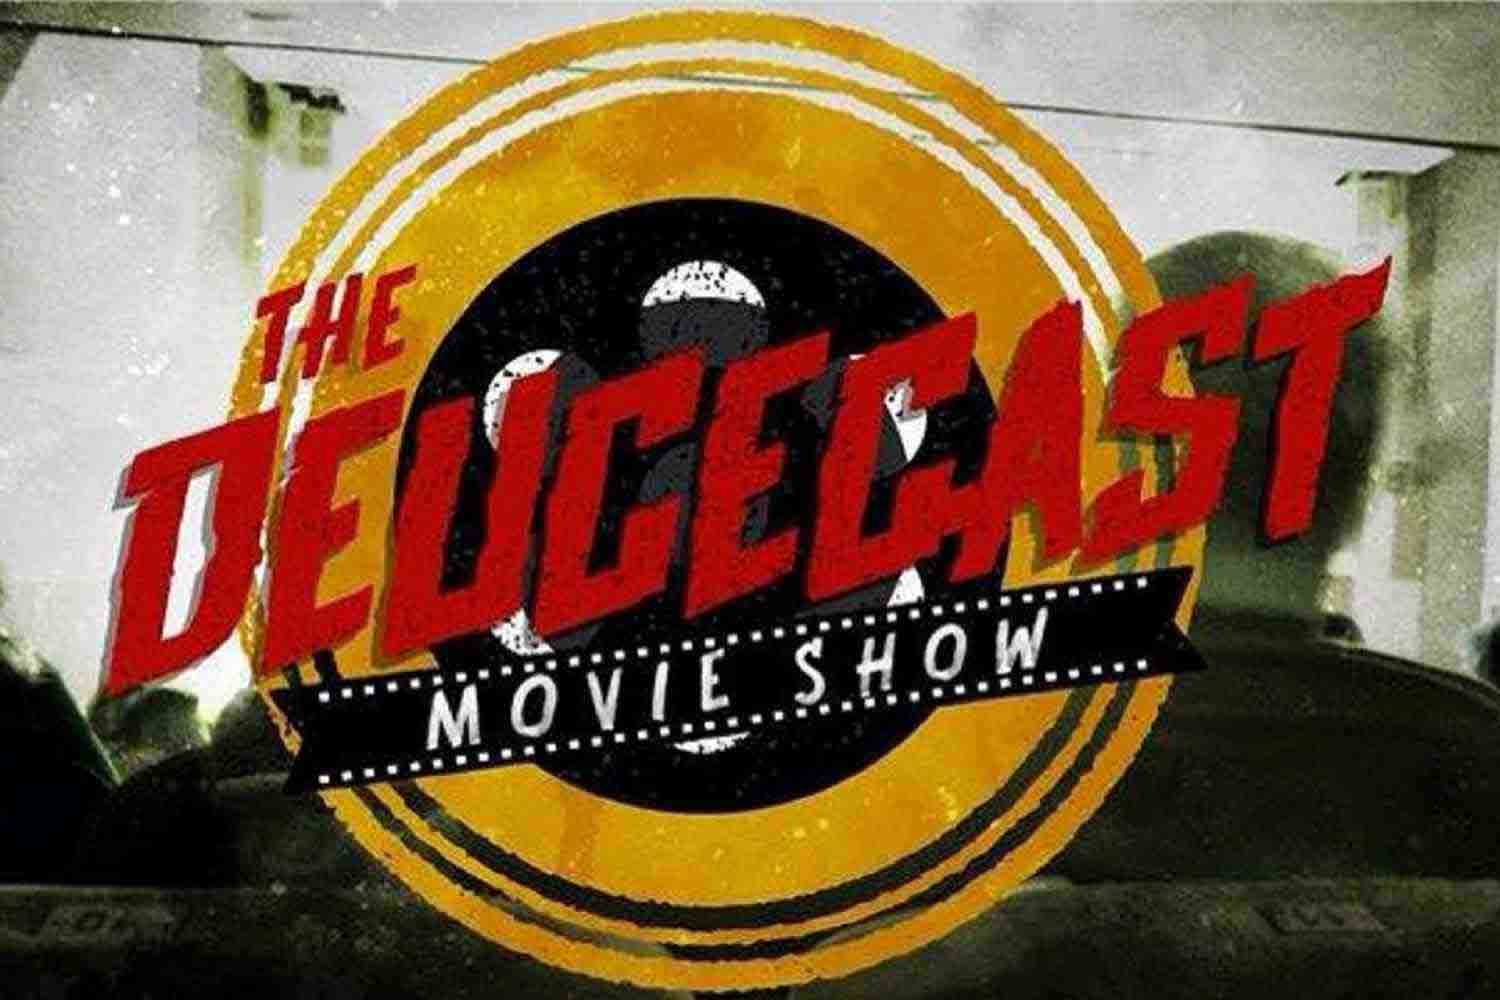 Deucecast Page Banner